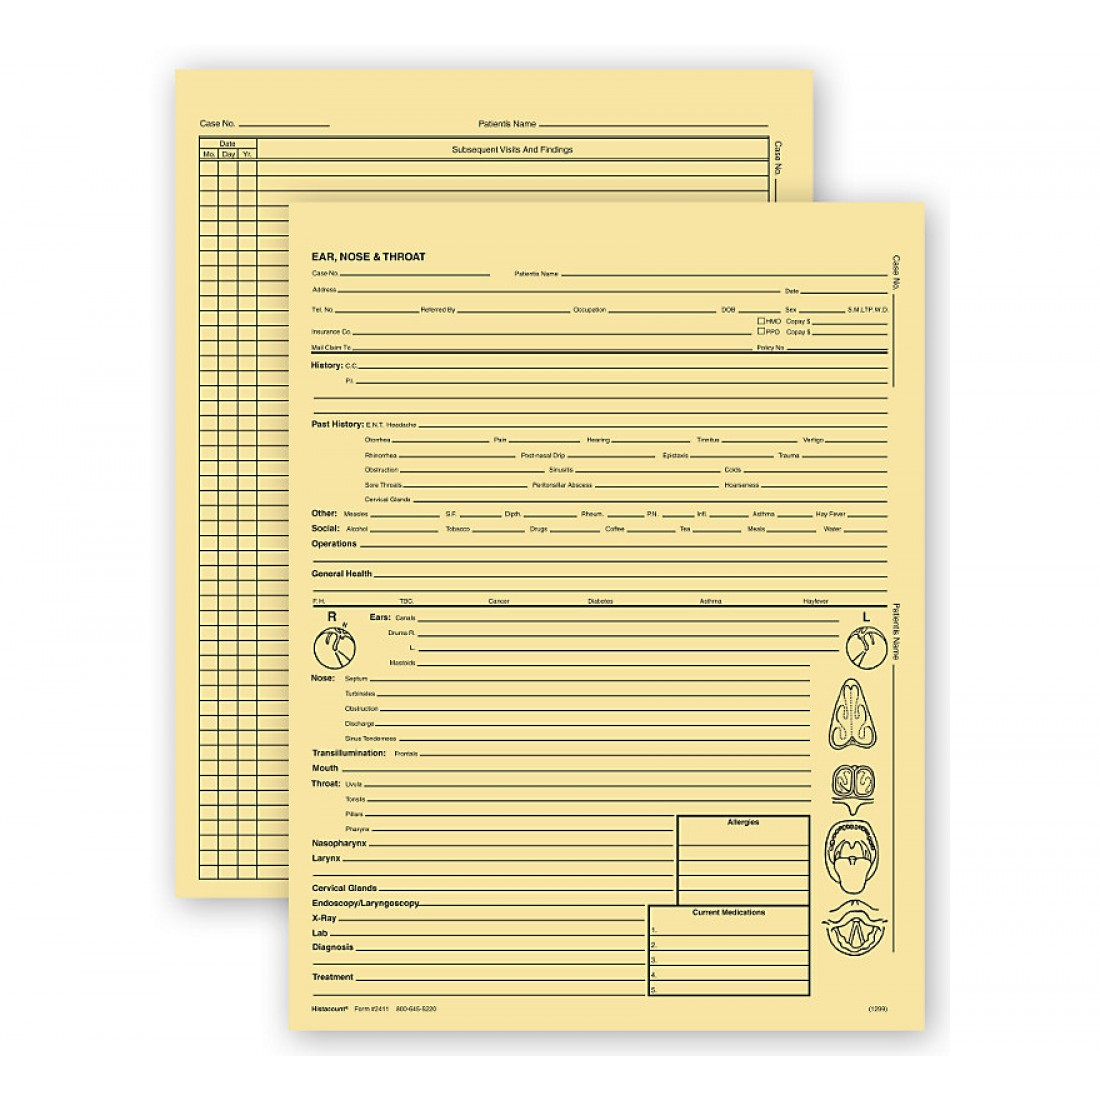 Ear Nose & Throat Specialty Exam Records Letter Style